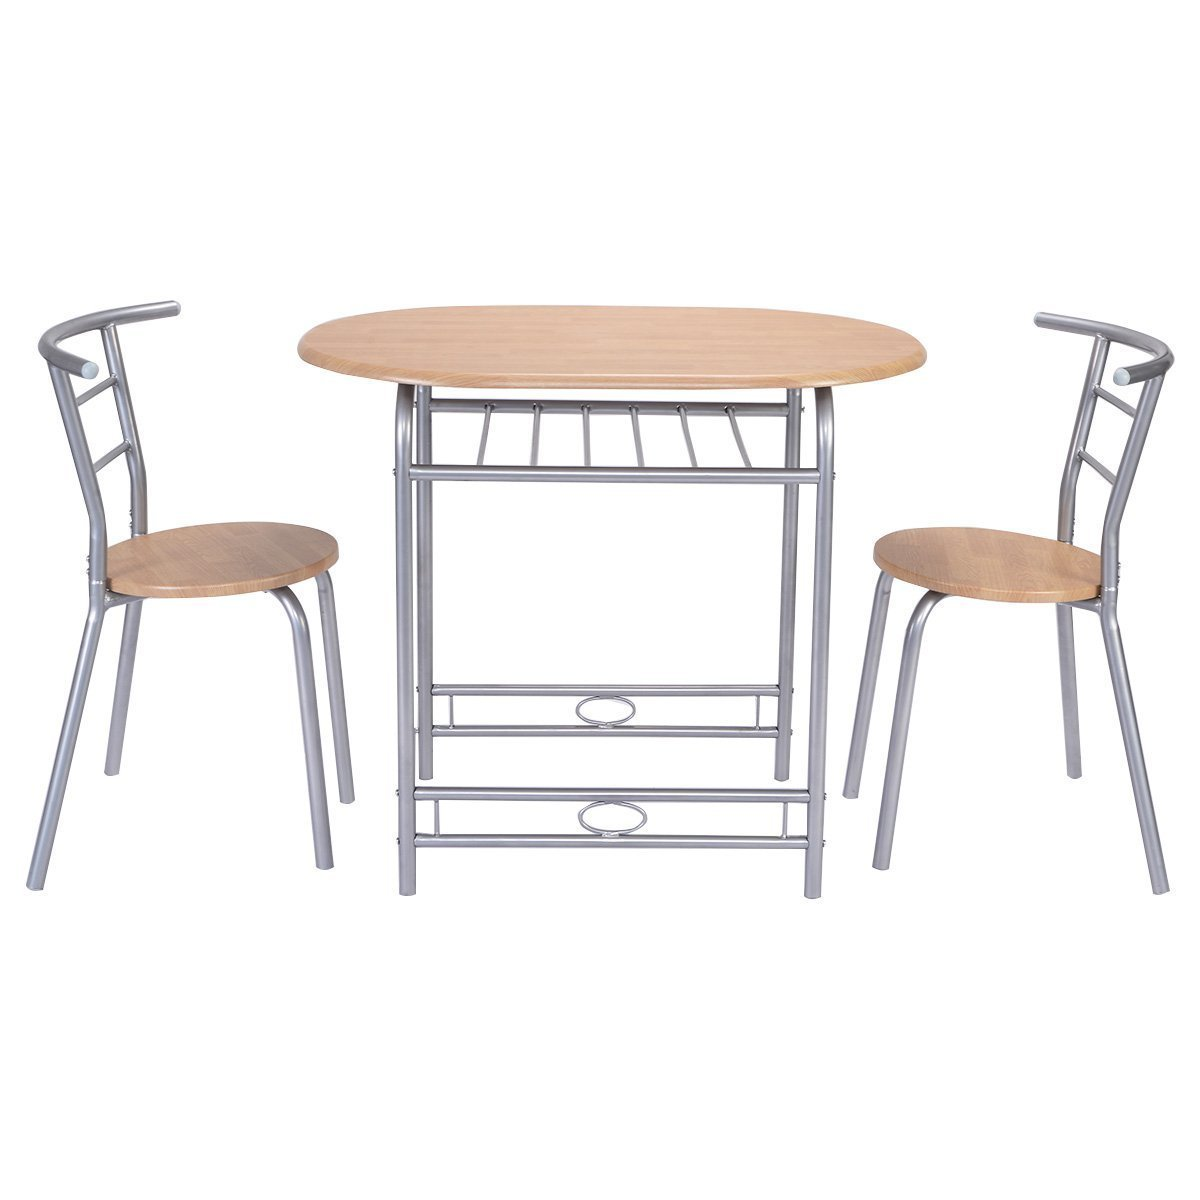 Amazon.com - Giantex 3 PCS Table Chairs Set Kitchen Furniture Pub Home Restaurant Dining Set - Table u0026 Chair Sets  sc 1 st  Amazon.com & Giantex 3 PCS Table Chairs Set Kitchen Furniture Pub Home Restaurant Dining Set